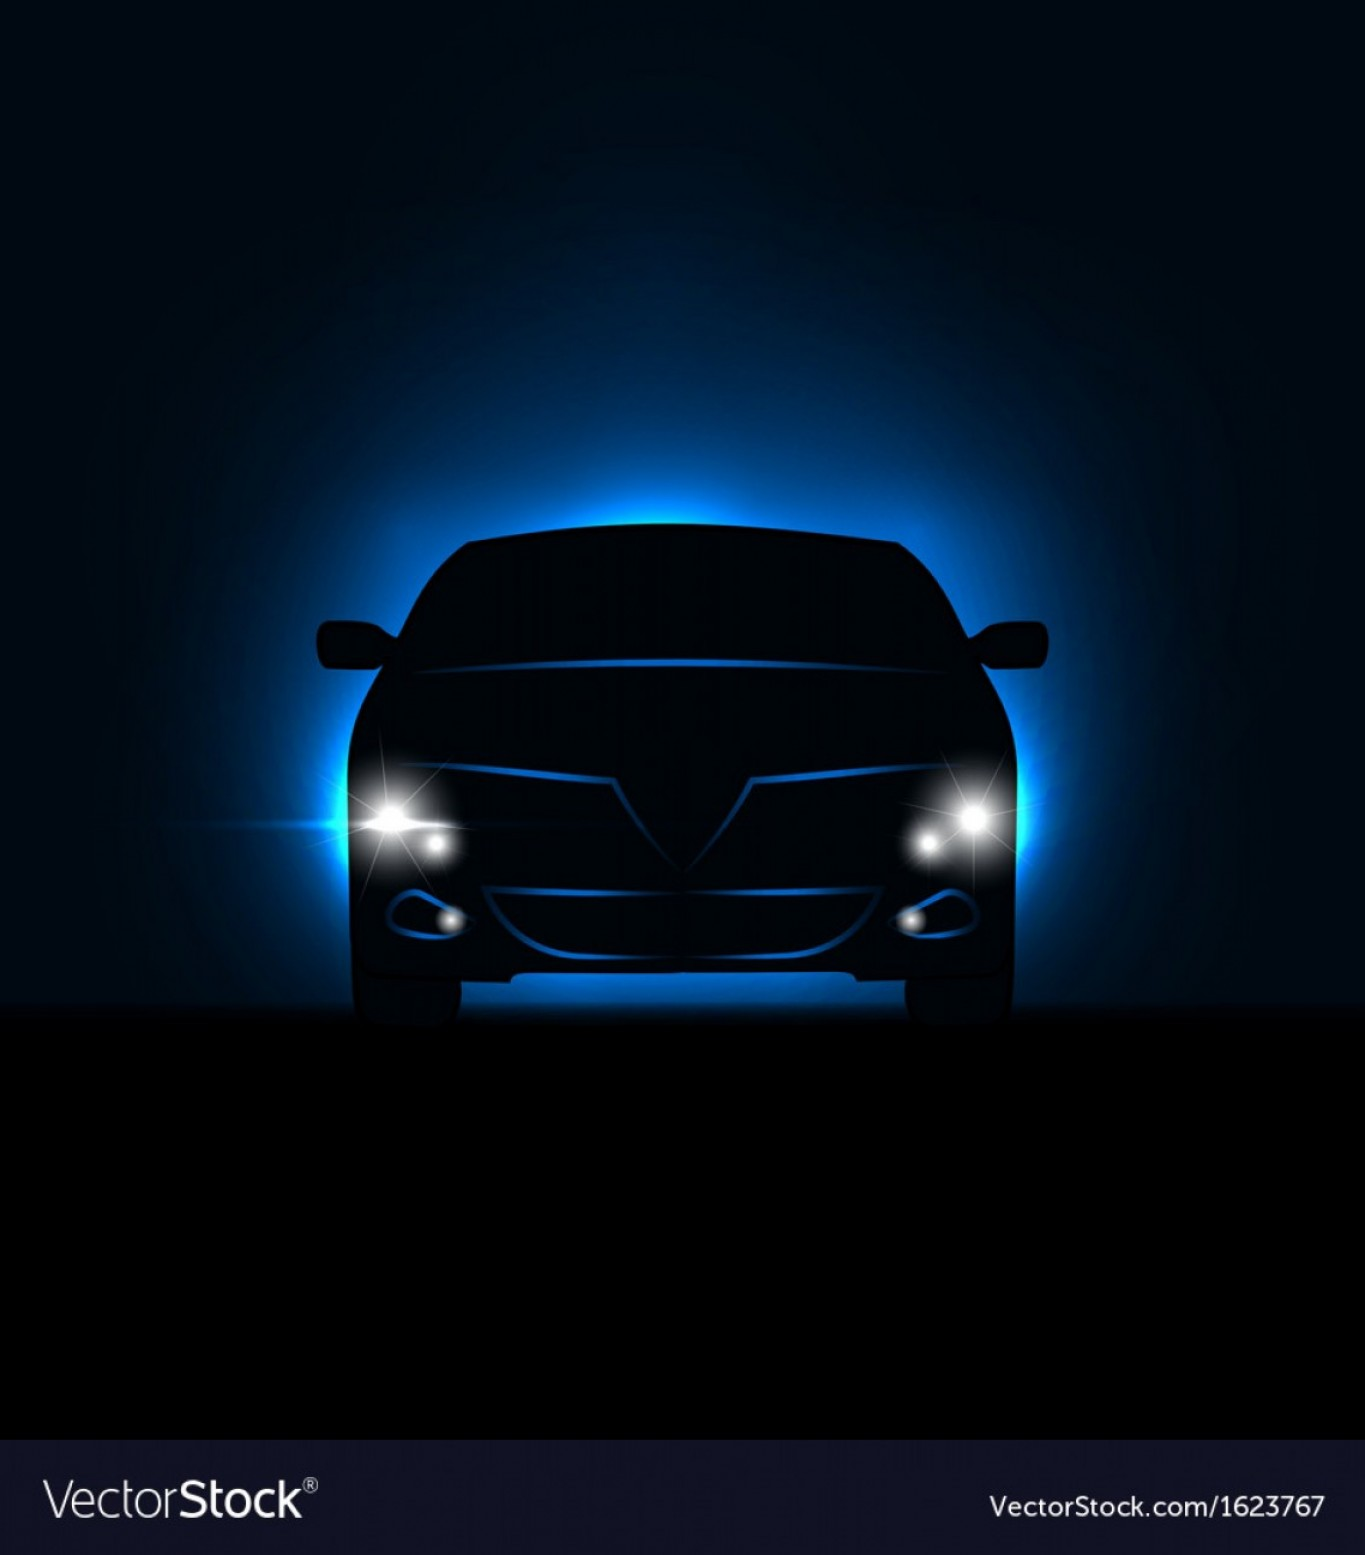 Vector Round Headlight: Silhouette Of Car With Headlights In Darkness Vector